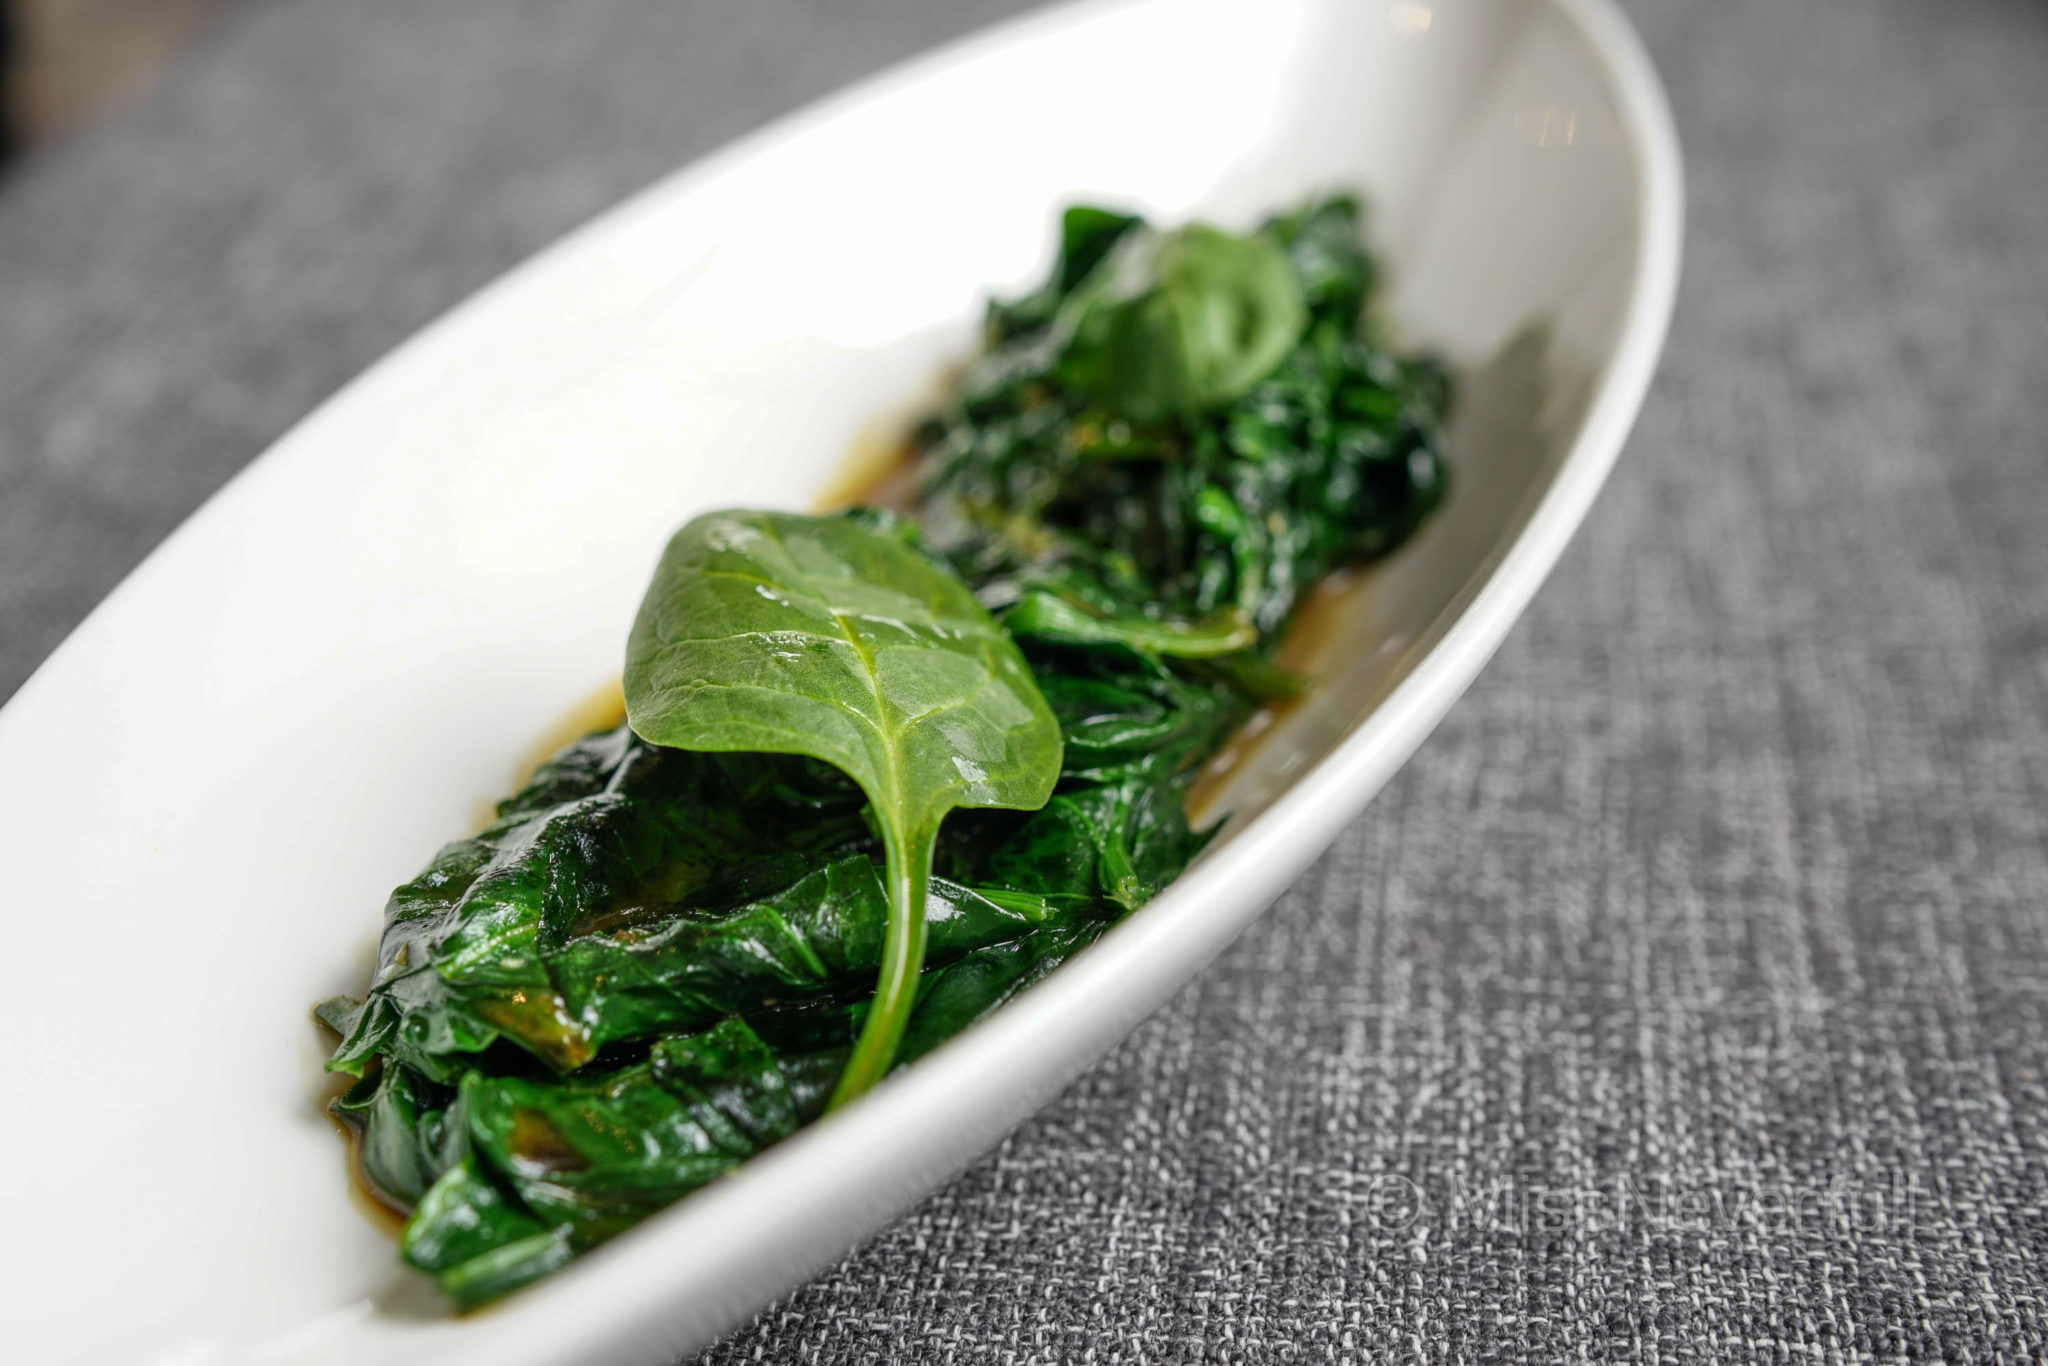 Spinach garlic Asiate, sesame oil and soy 蒜香亚洲风味菠菜(RMB 70)